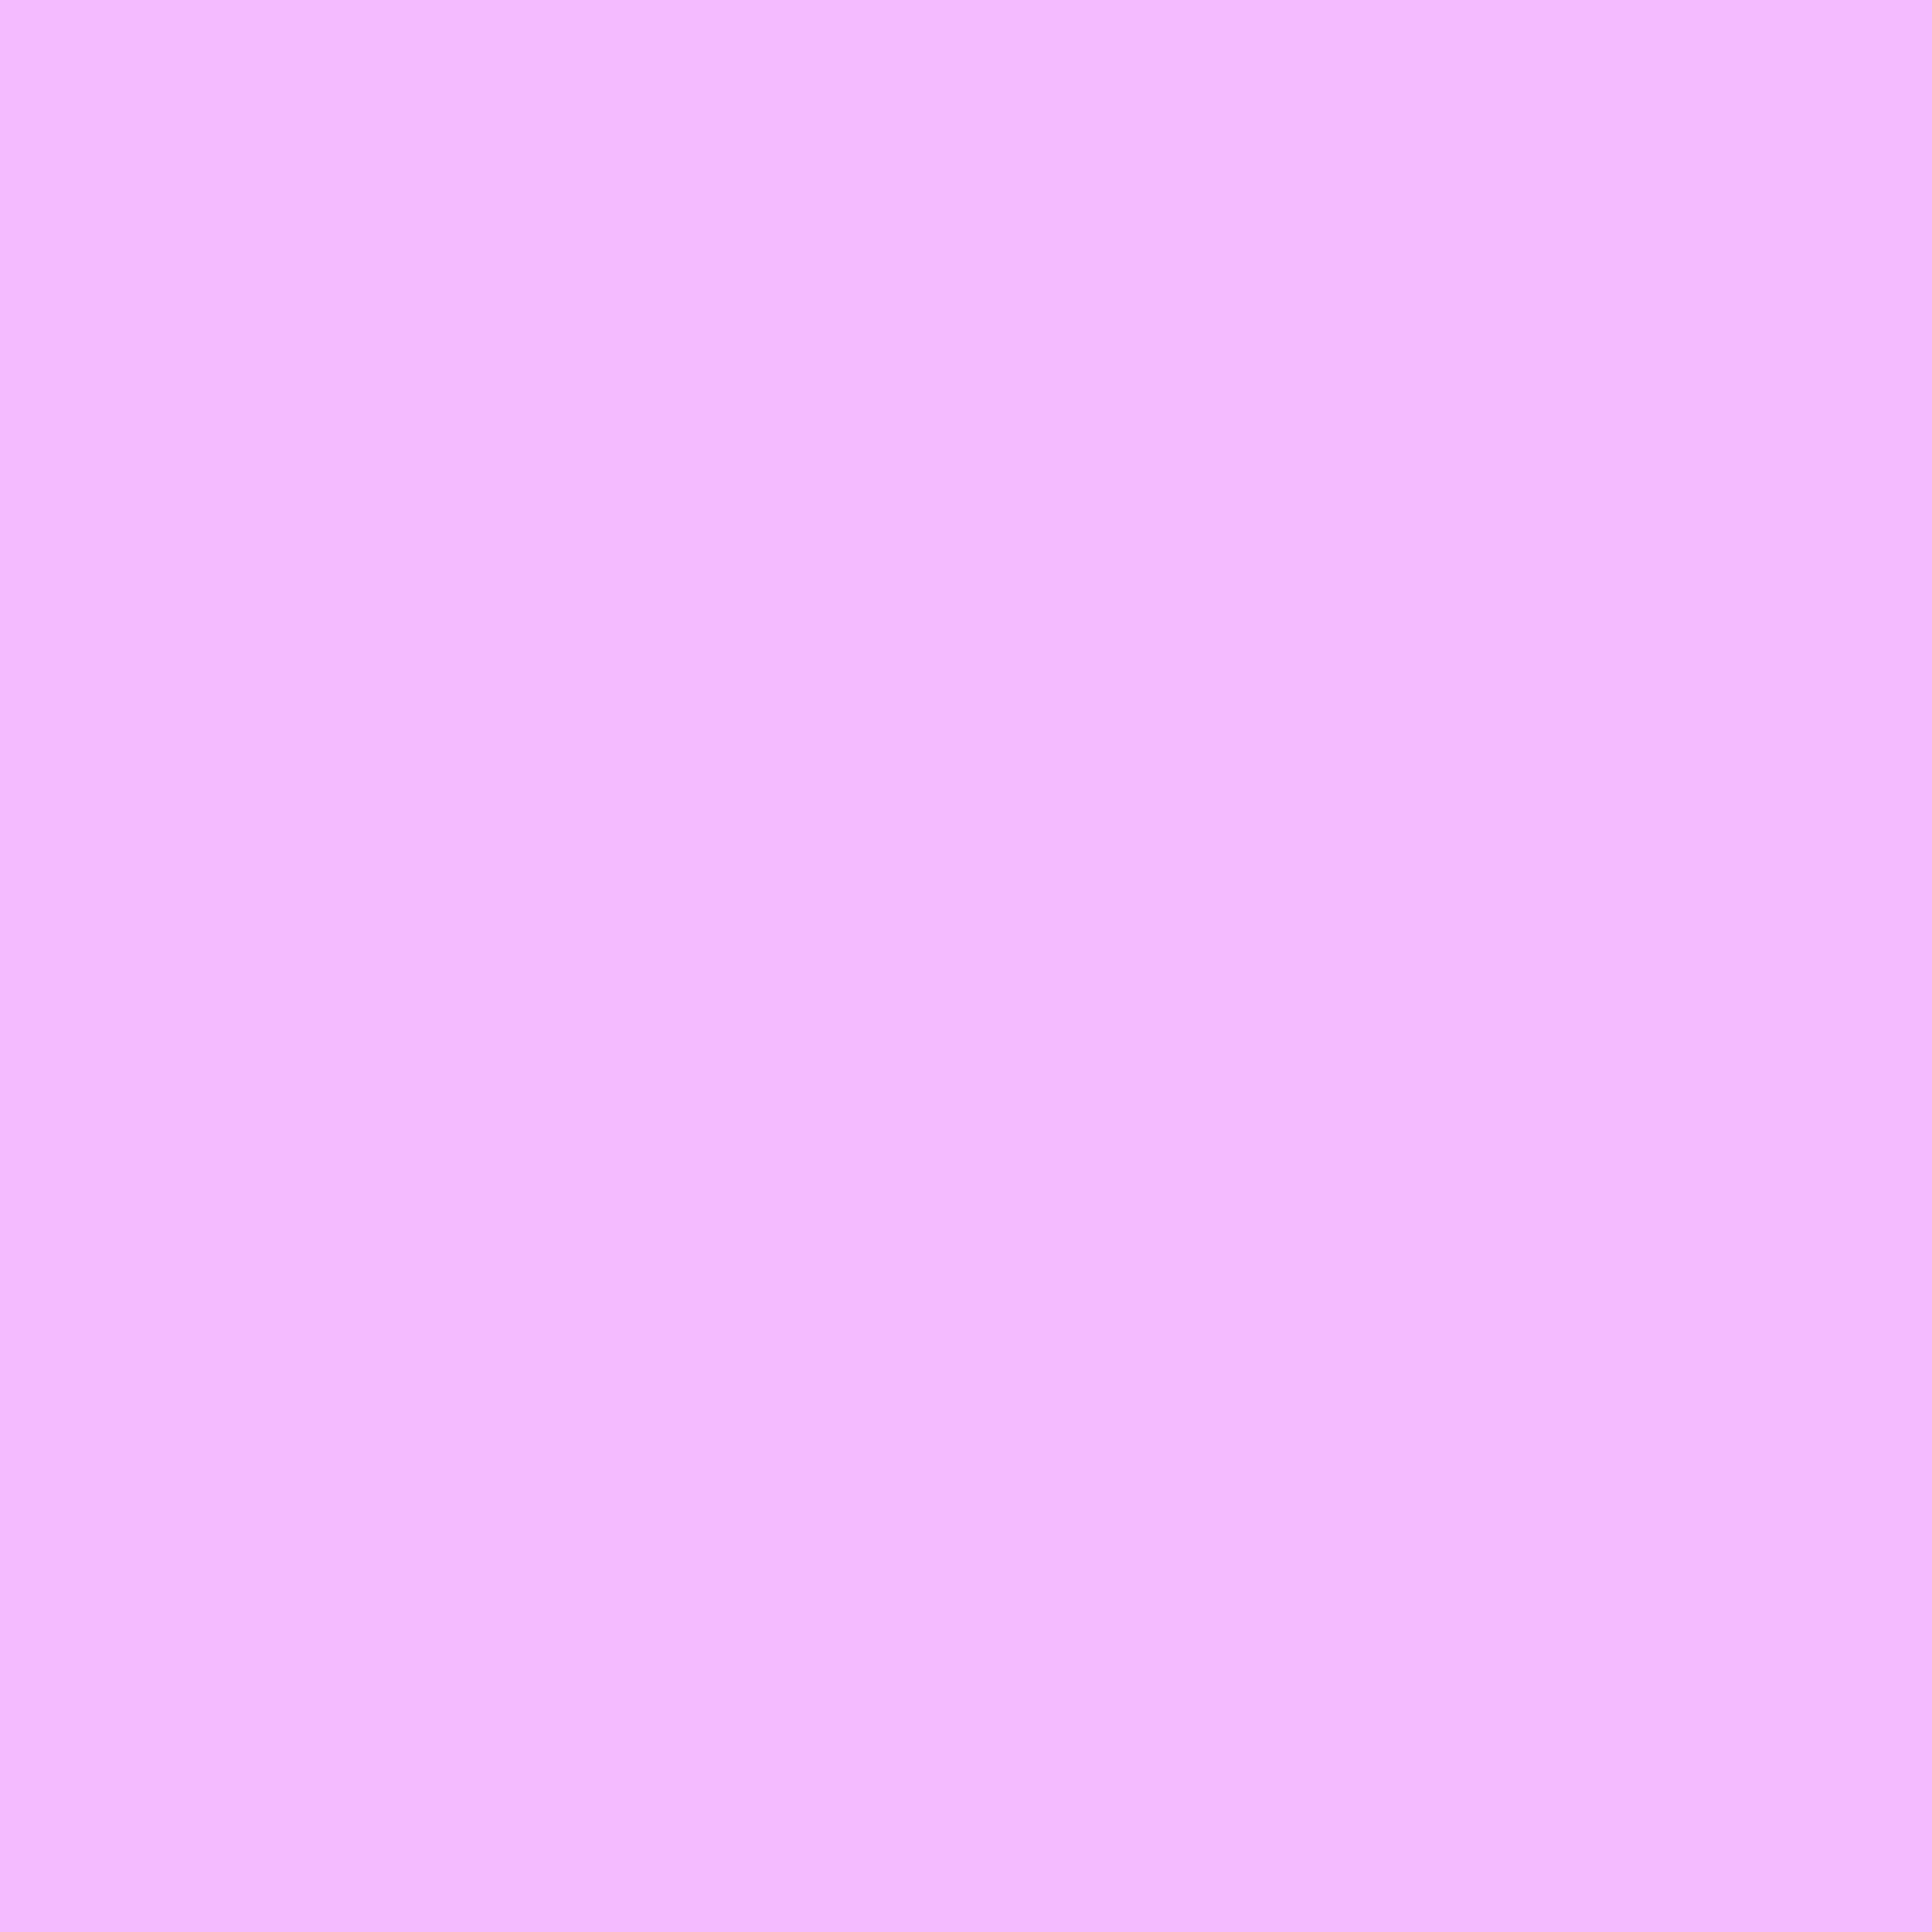 2732x2732 Electric Lavender Solid Color Background